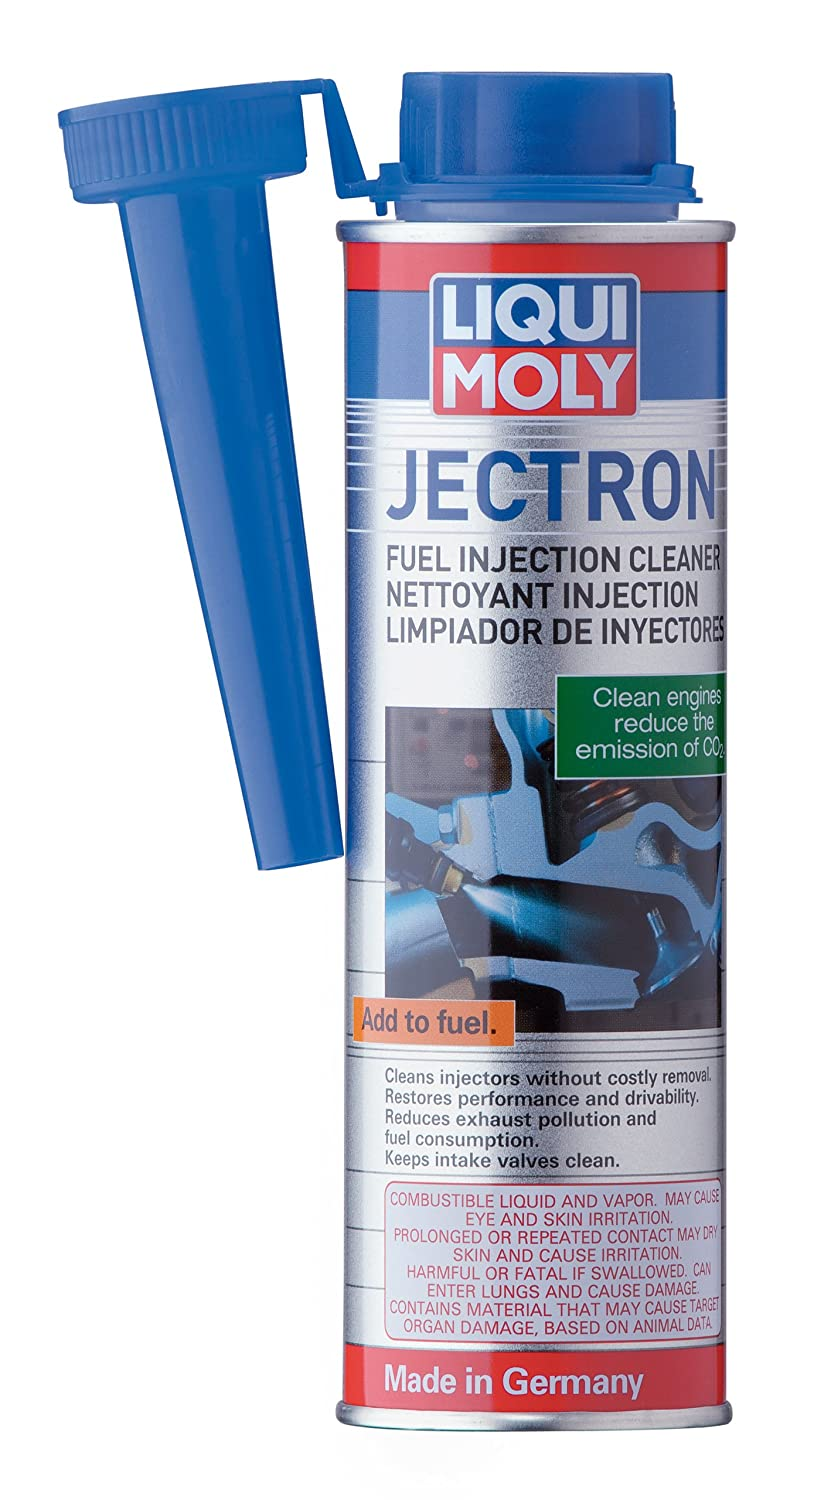 Liqui-Moly-Jectron-Gasoline-Fuel-Injection-Cleaner